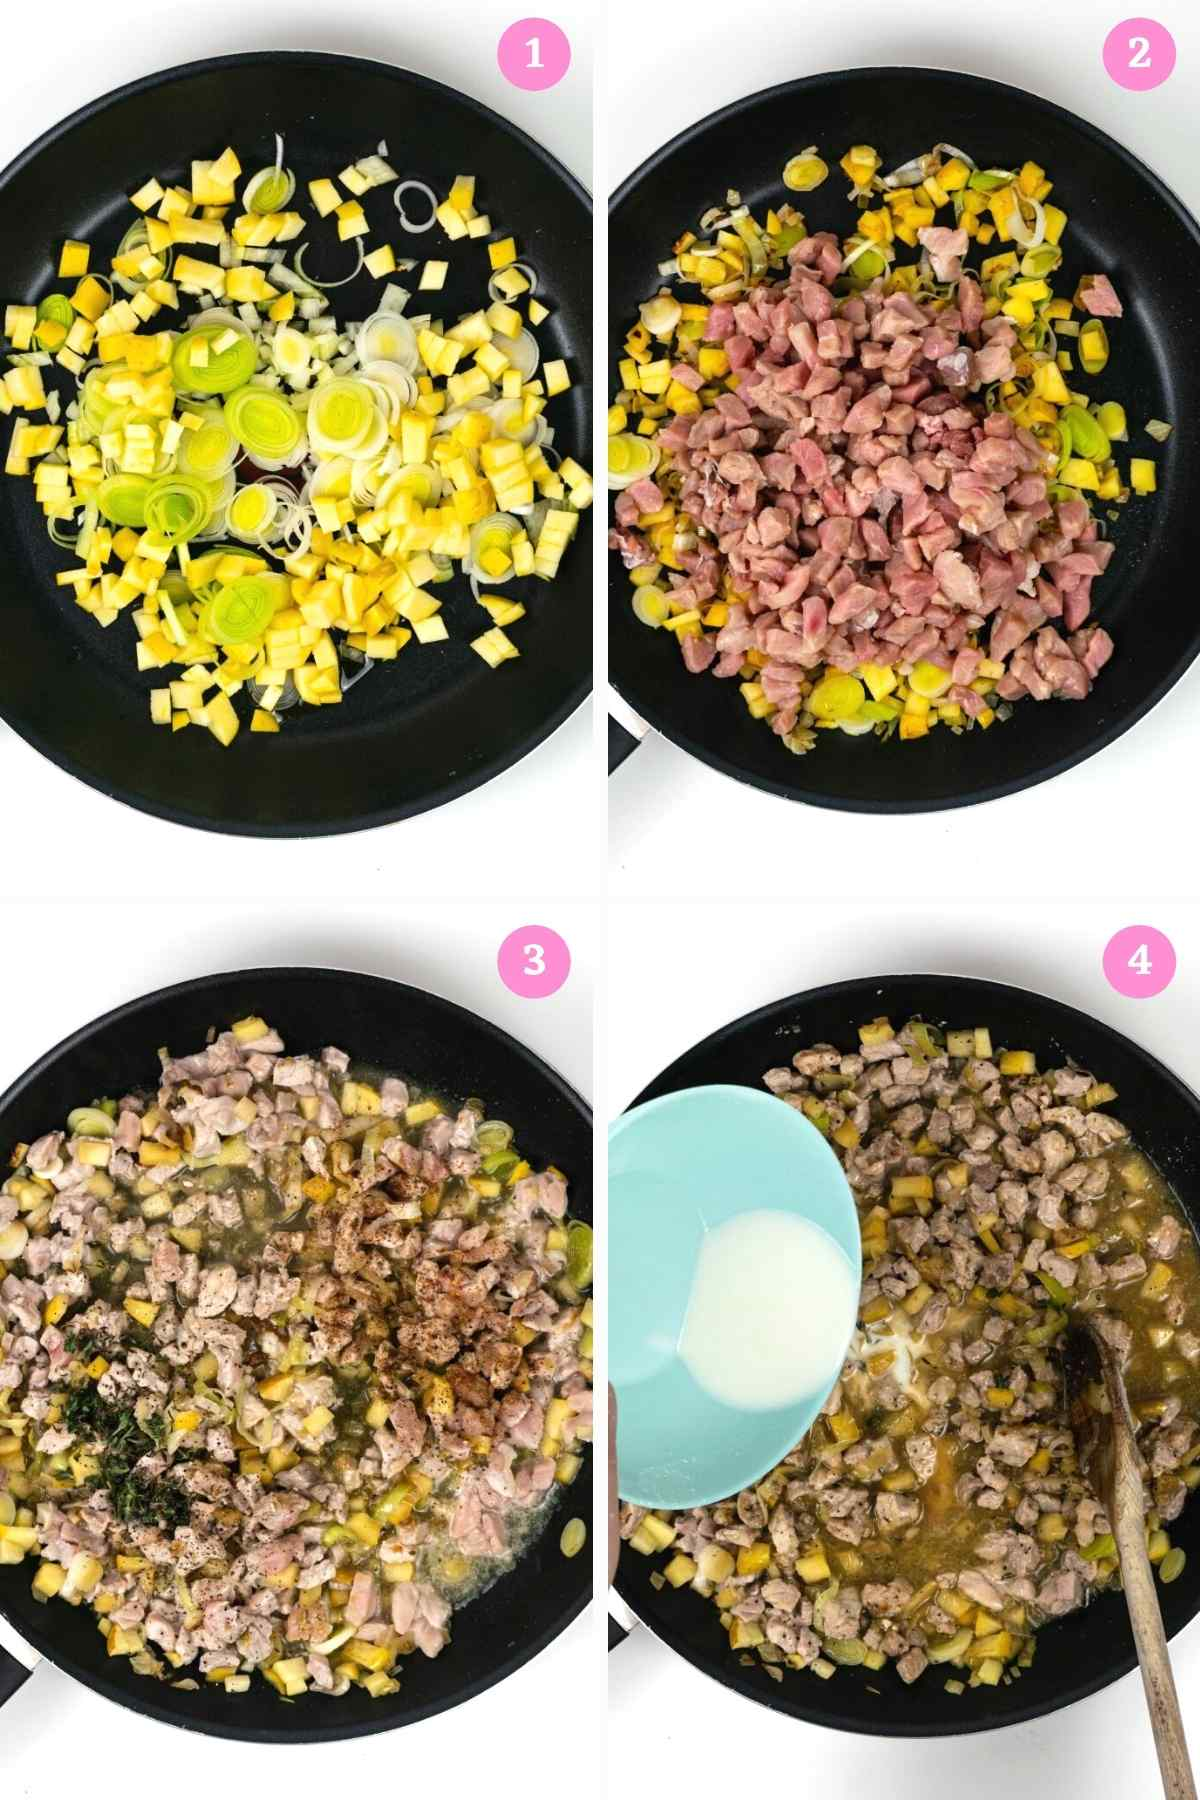 Collage of 4 images showing how to make the British Pork Pie filling